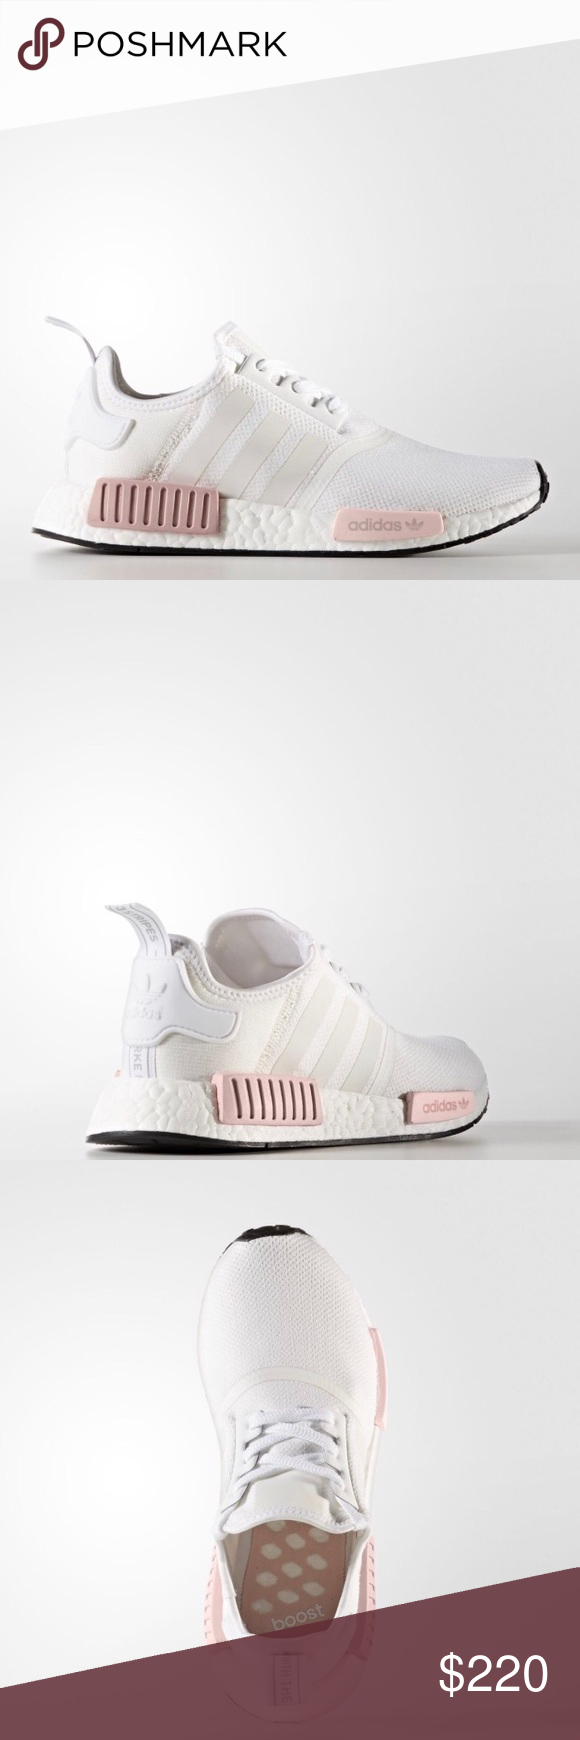 Adidas nmd white lcey rosa adidas nmd bianco e lcey donna rosa